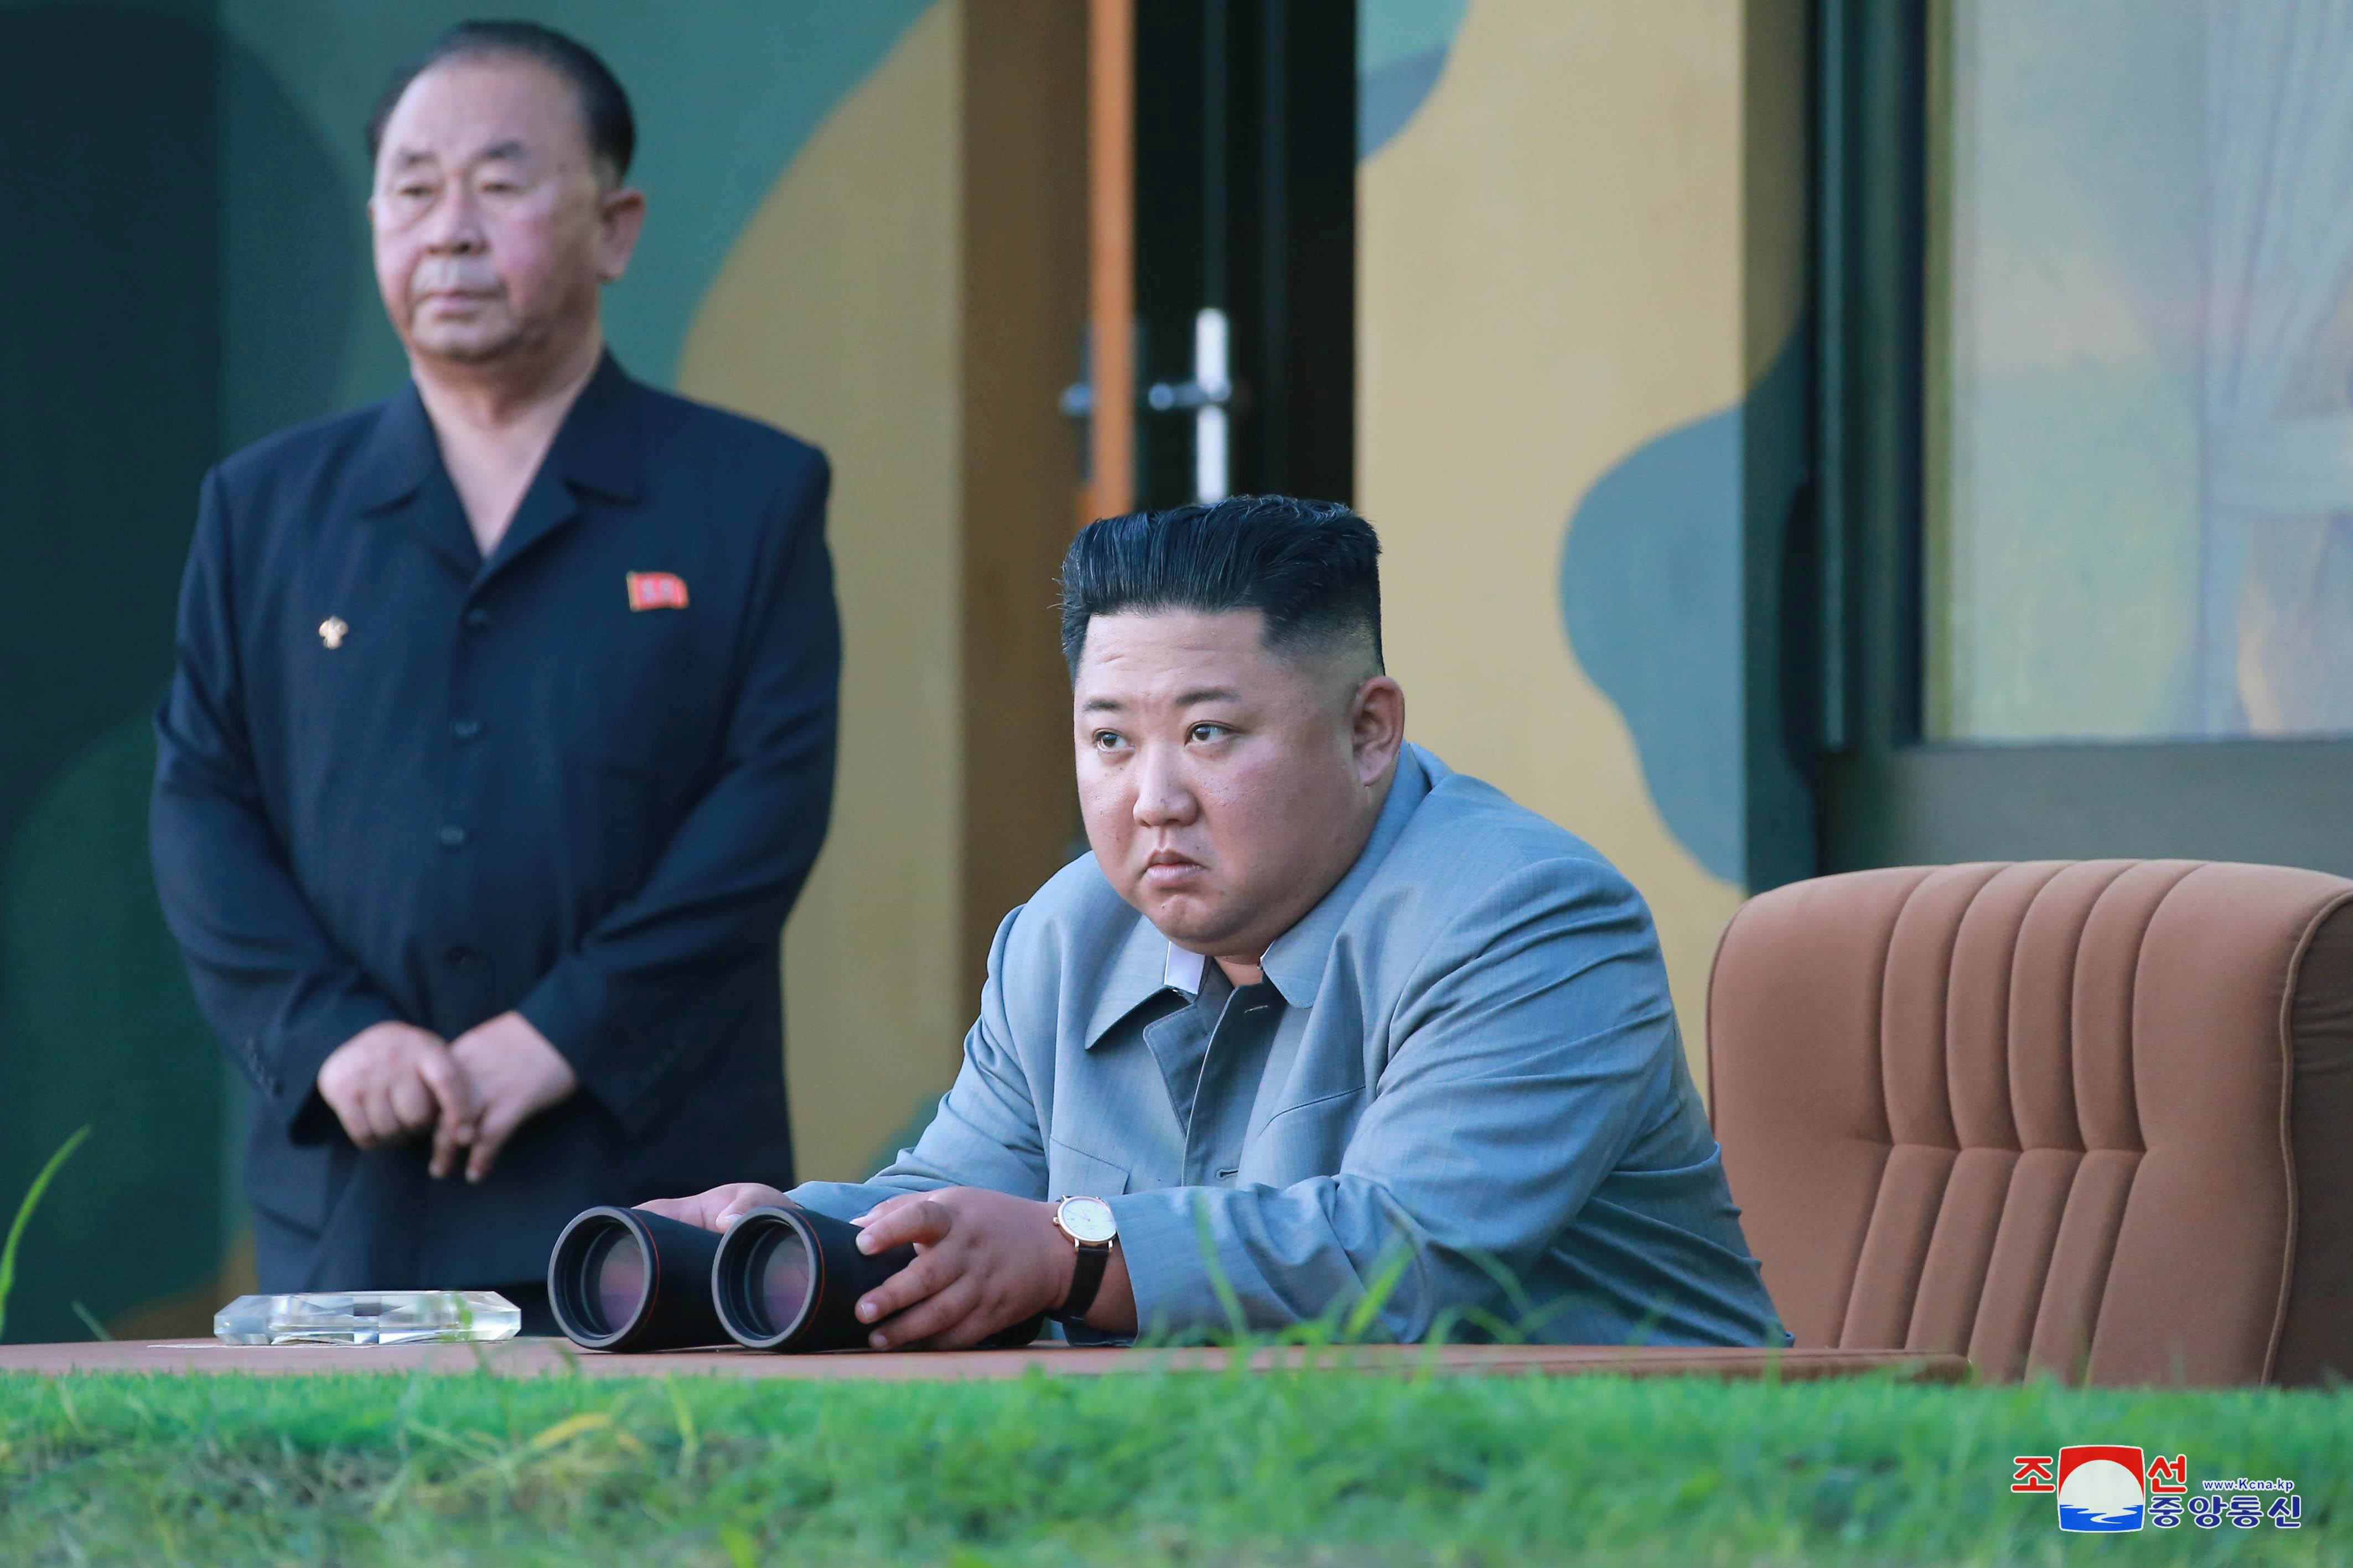 Flaws seen in Trump's calm response to North Korean missile